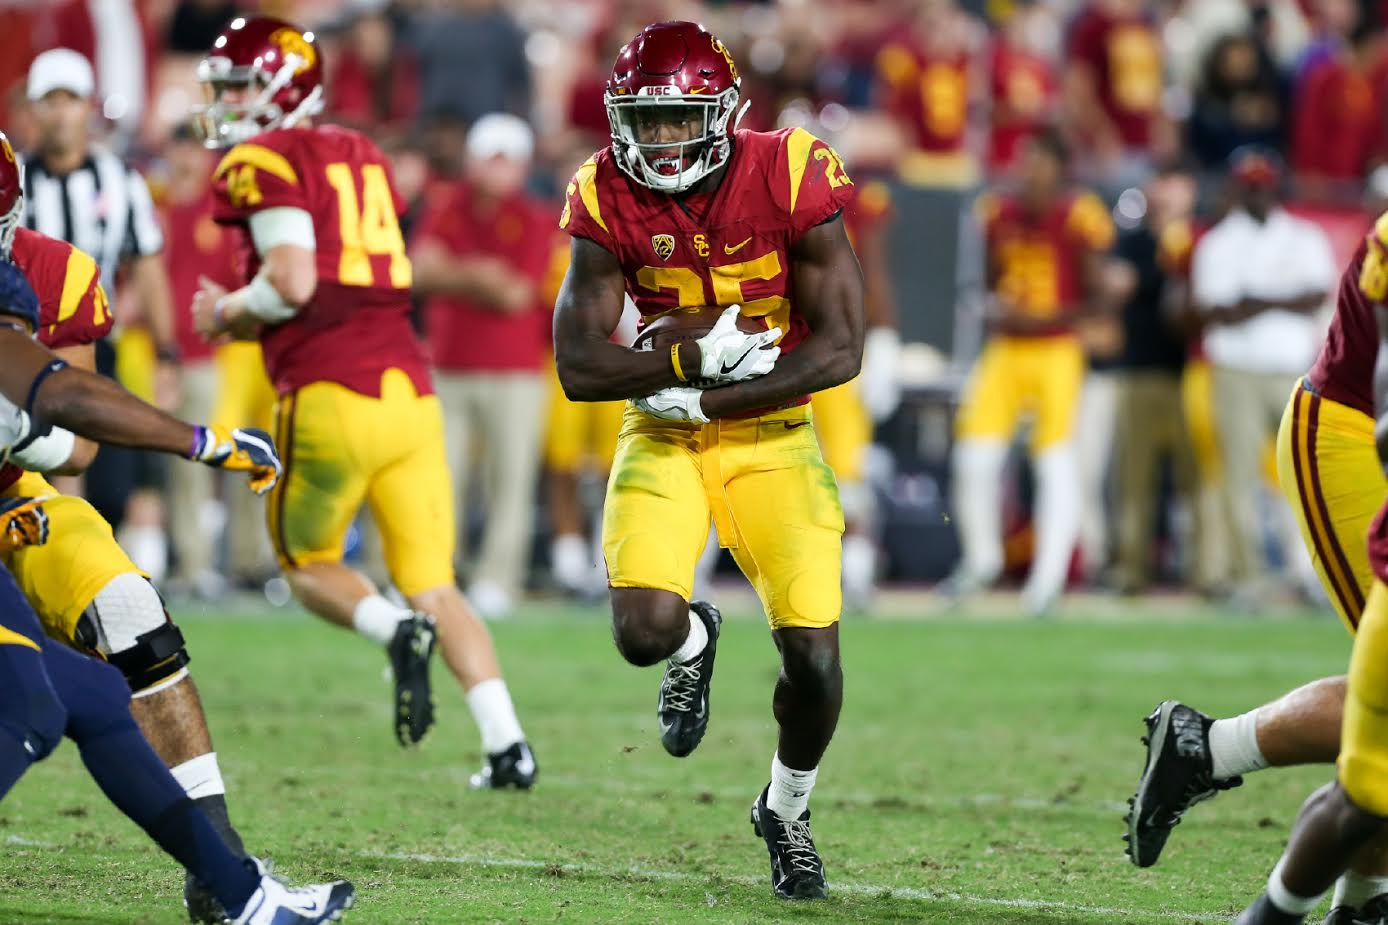 Running back Ronald Jones II goes through a hole during the Cal vs USC on Oct. 28, 2016 at Los Angeles Memorial Coliseum, in Los Angeles, Ca. (Photo by Jordon Kelly / fi360 News)